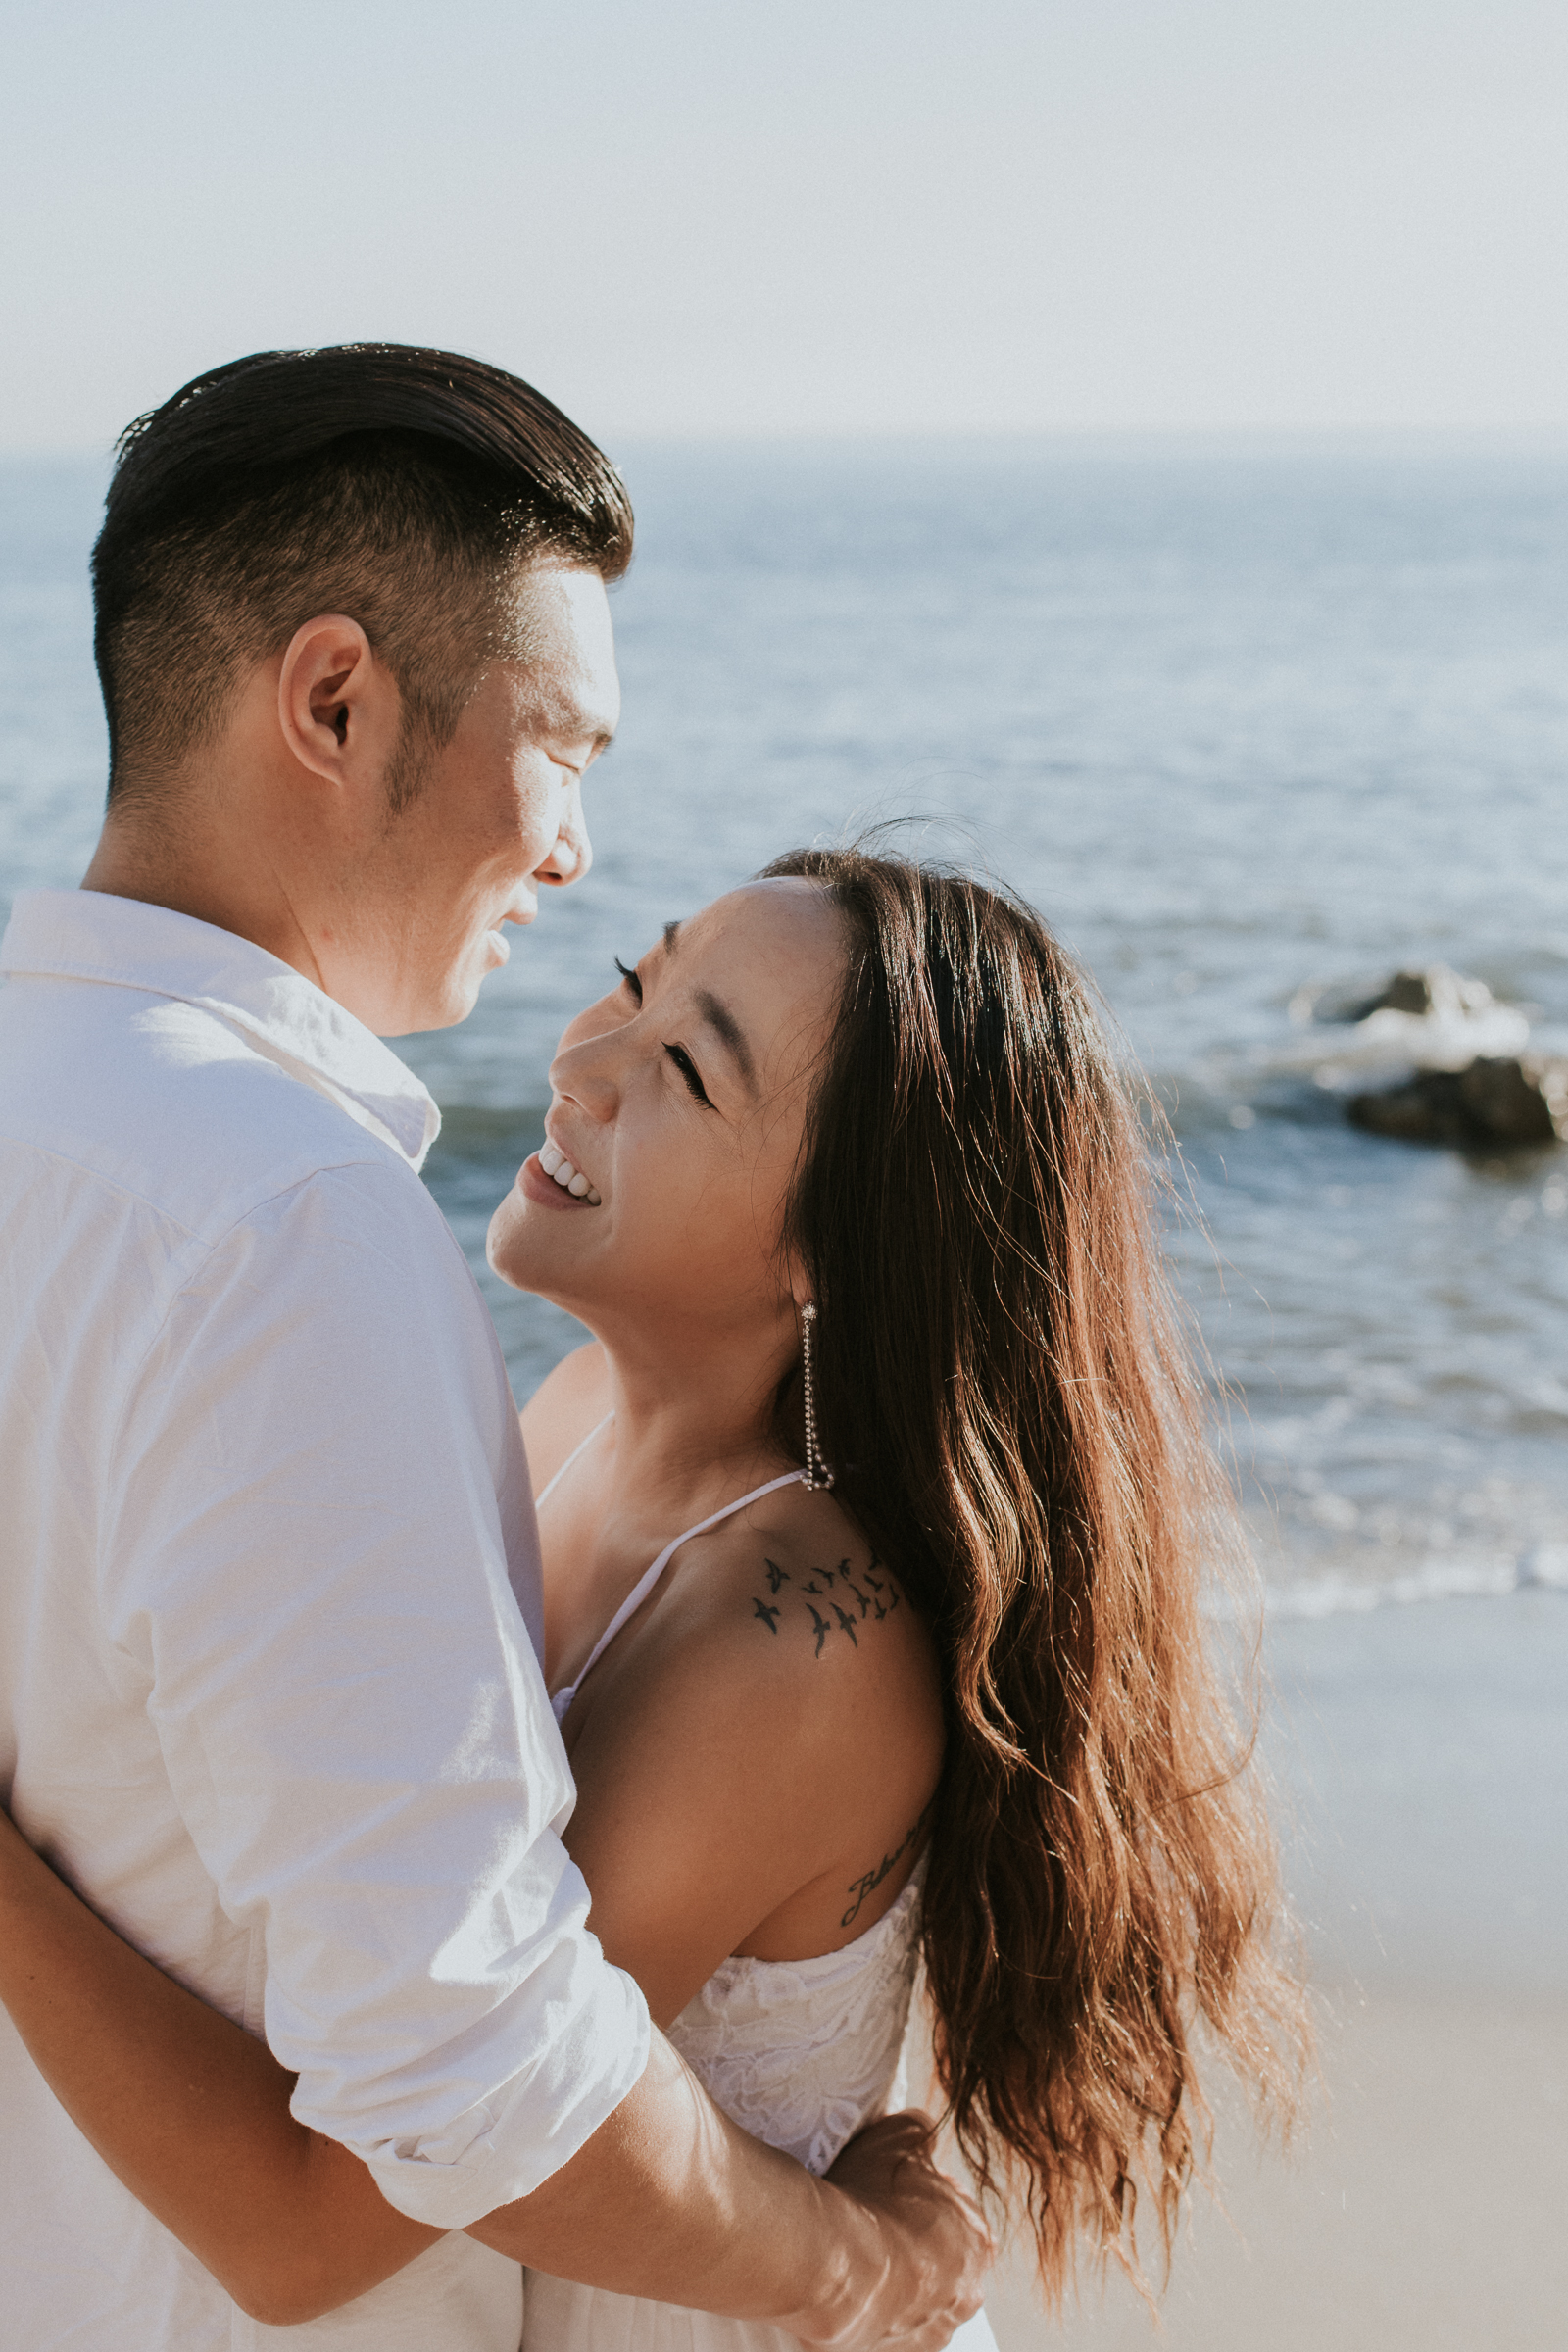 Malibu-El-Matador-State-Beach-Sunset-Engagement-Photos-Los-Angeles-Documentary-Wedding-Photographer-7.jpg